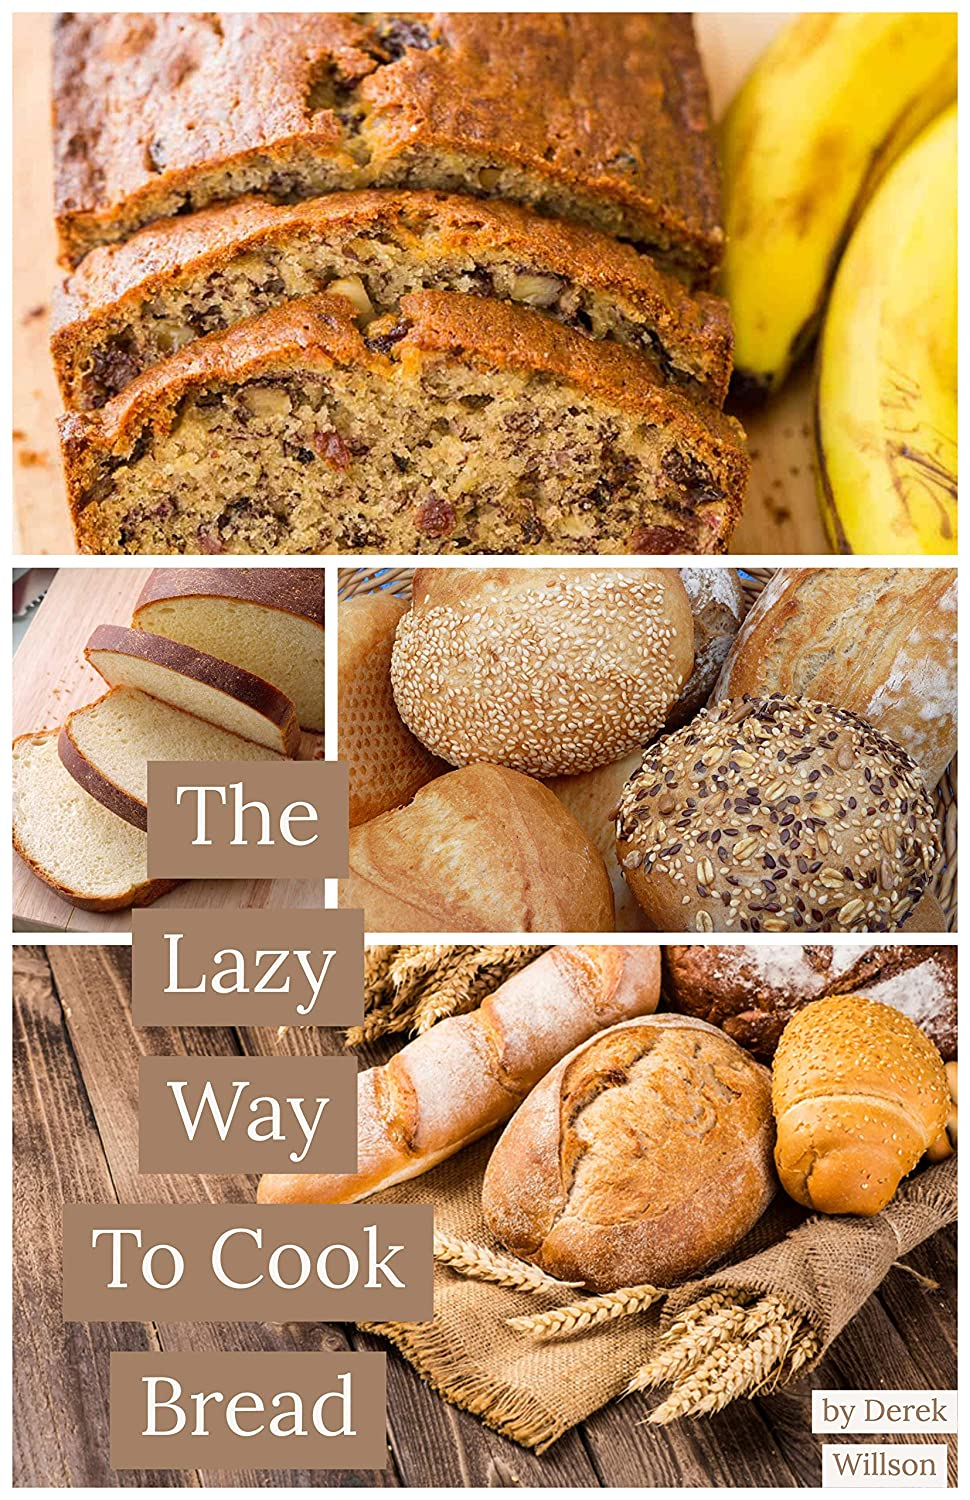 The Lazy Way To Cook Bread (English Edition)